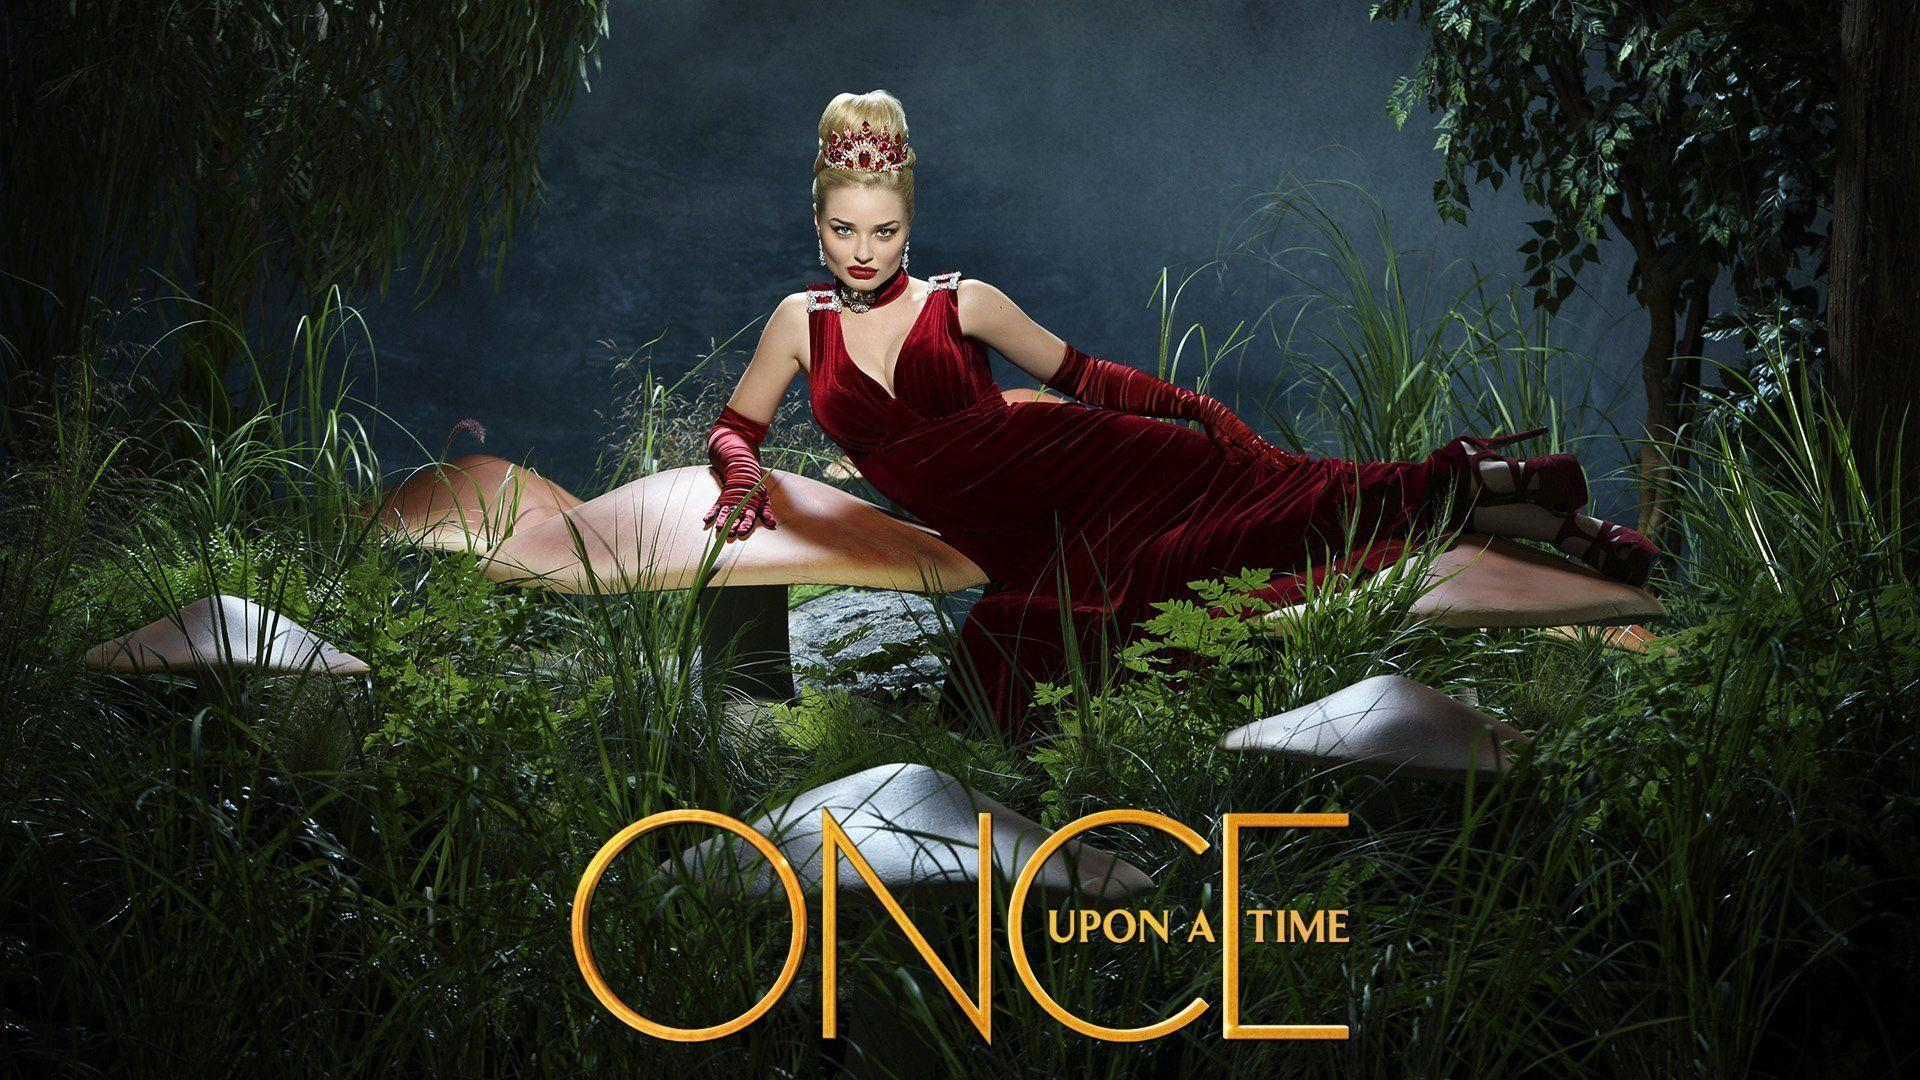 ONCE-UPON-A-TIME fantasy drama mystery once upon time adventure ...